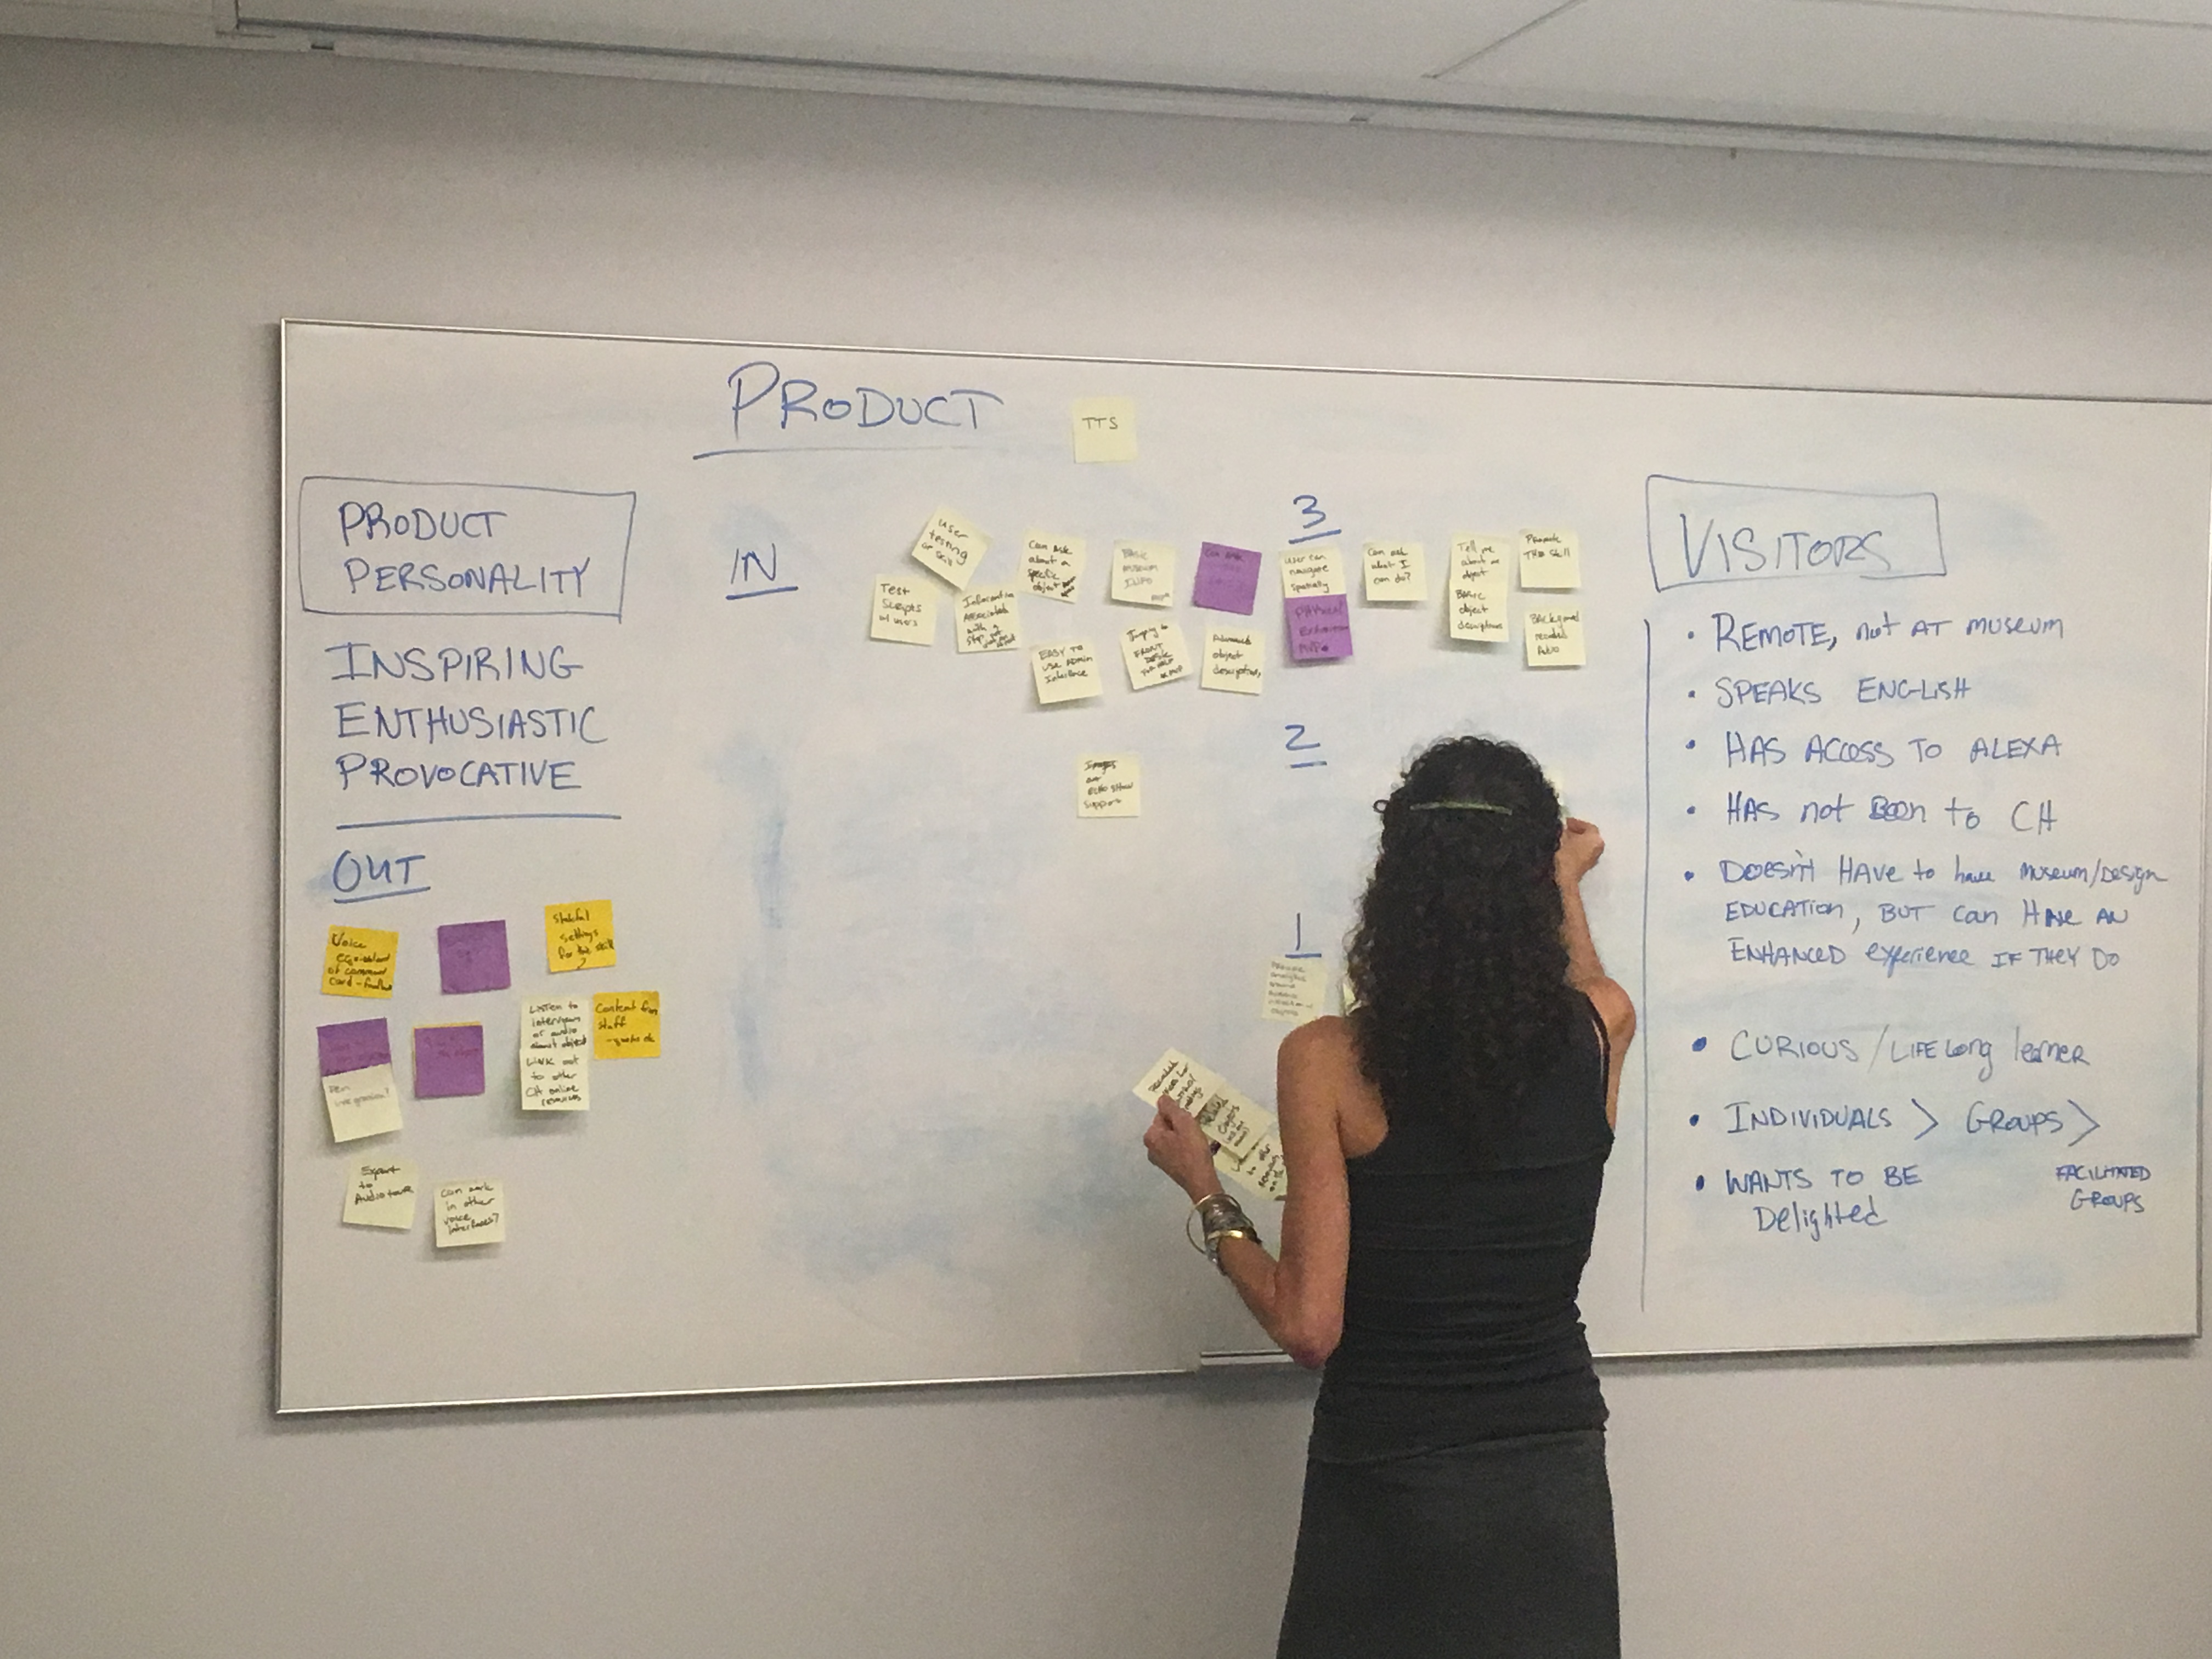 A woman adding post its to a white board with a lot of information on it